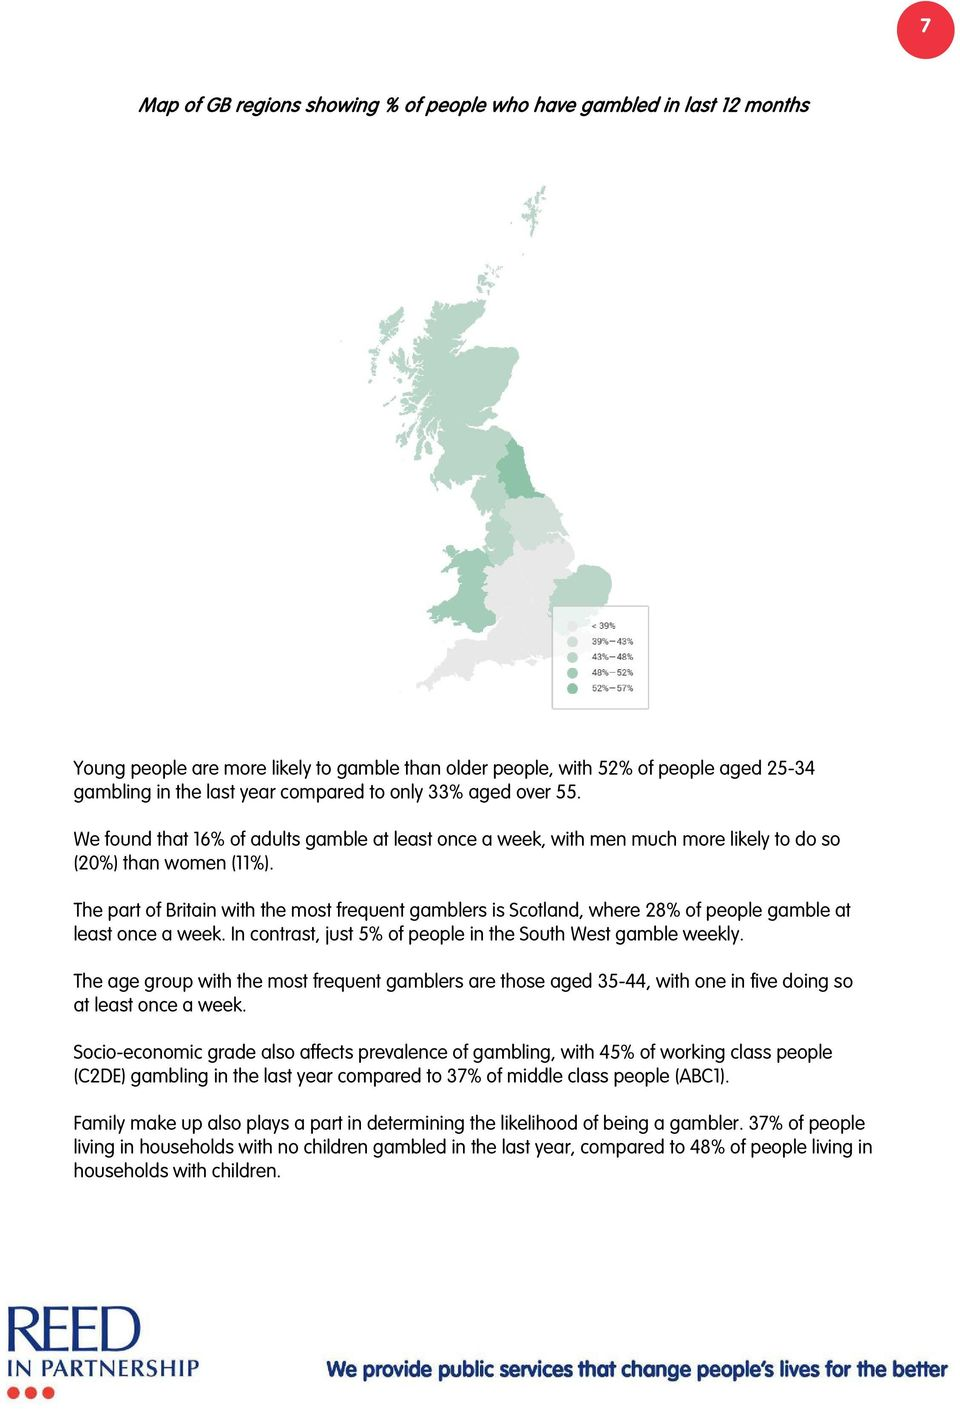 The part of Britain with the most frequent gamblers is Scotland, where 28% of people gamble at least once a week. In contrast, just 5% of people in the South West gamble weekly.